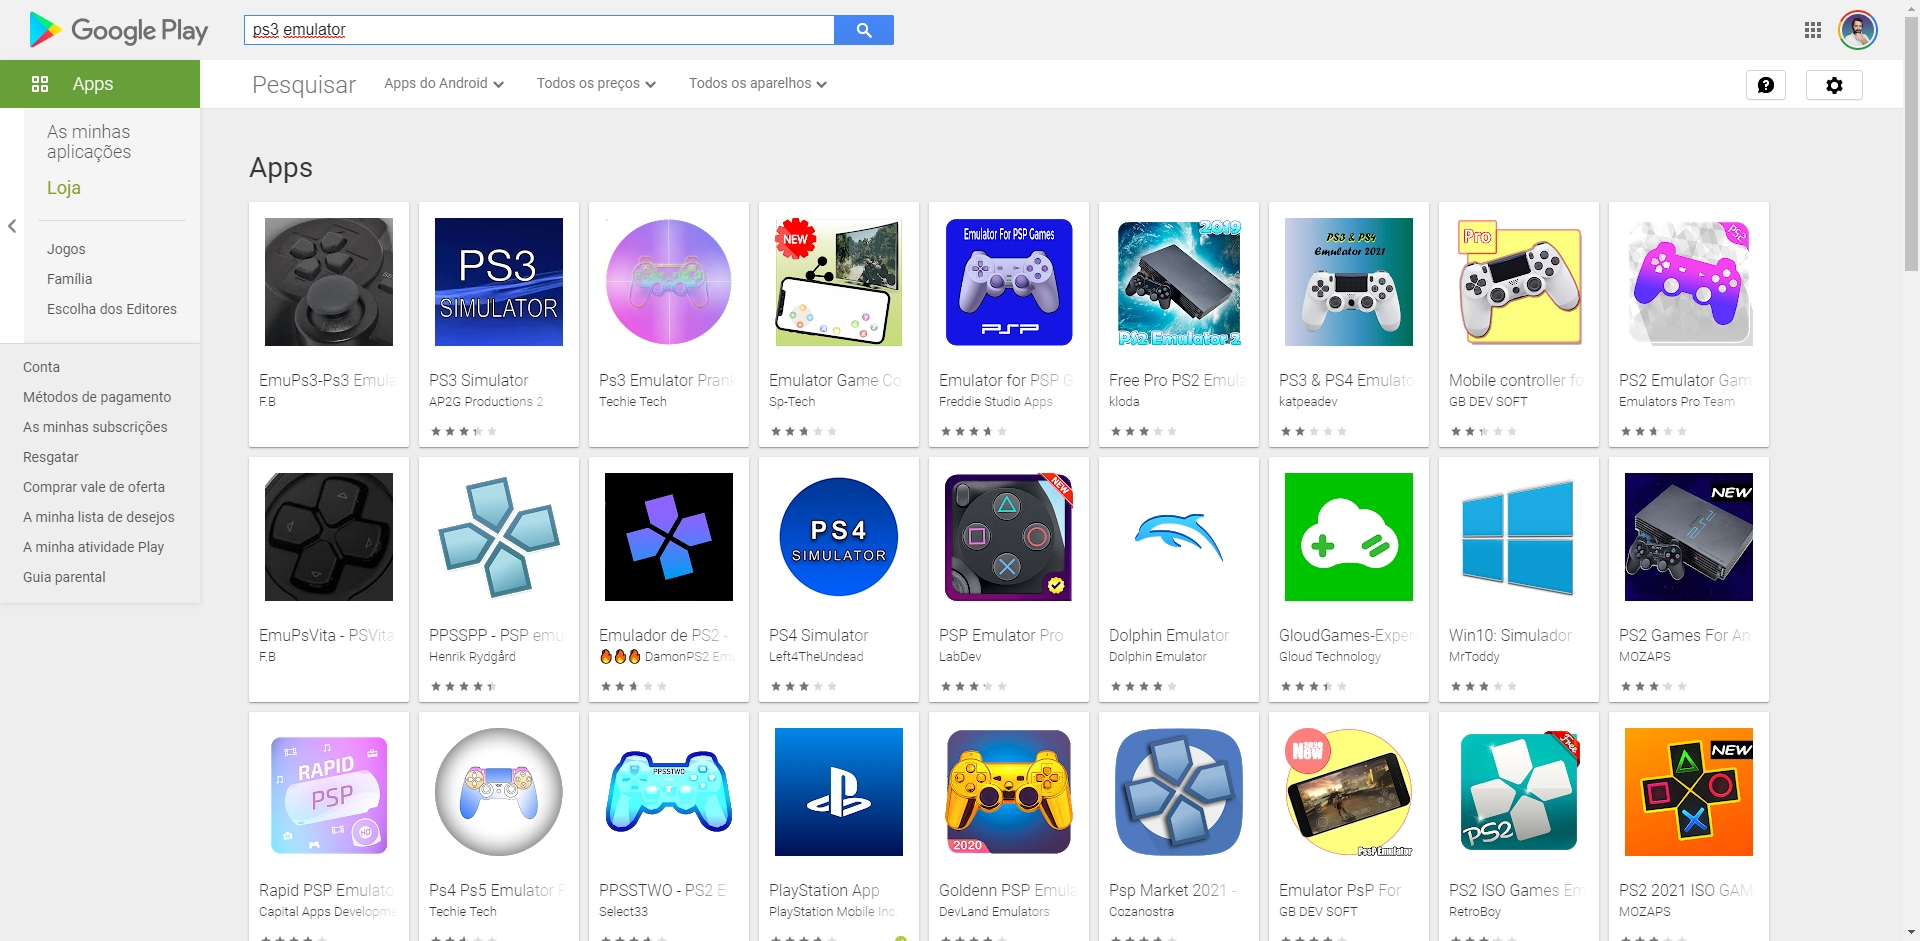 google play store apps emuladores ps3